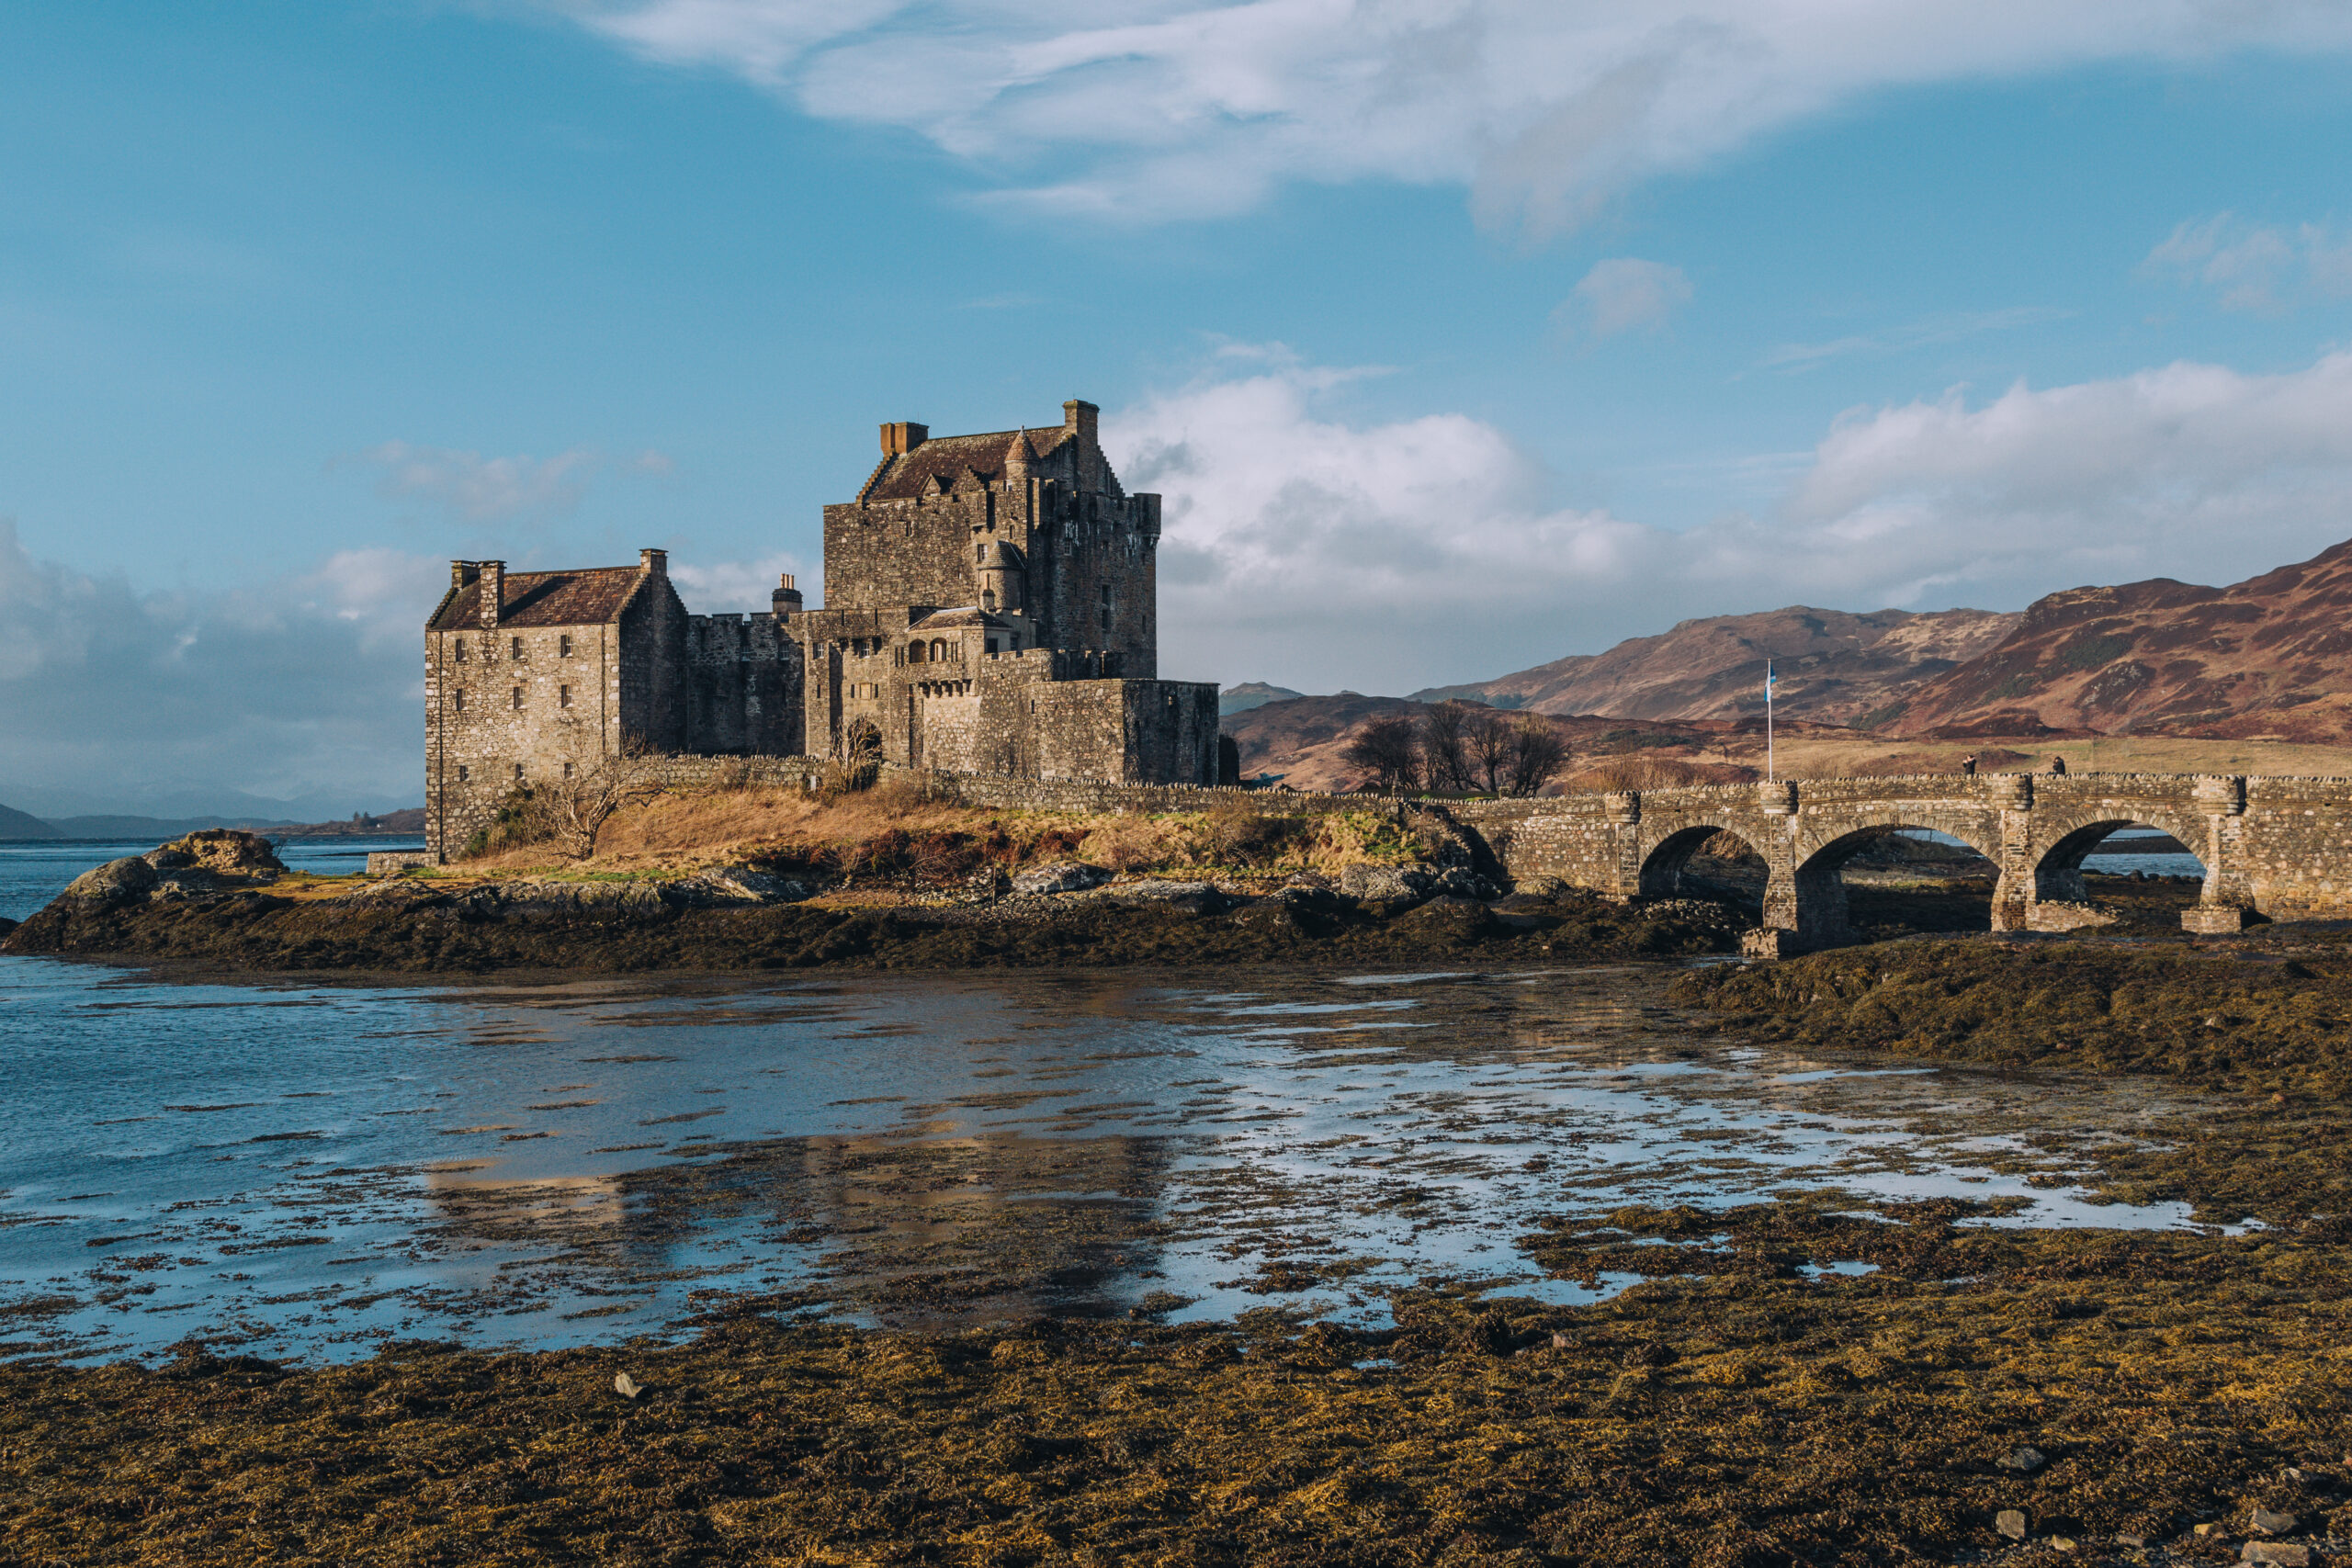 View of Eilean Donan Castle and the wee bridge across the water